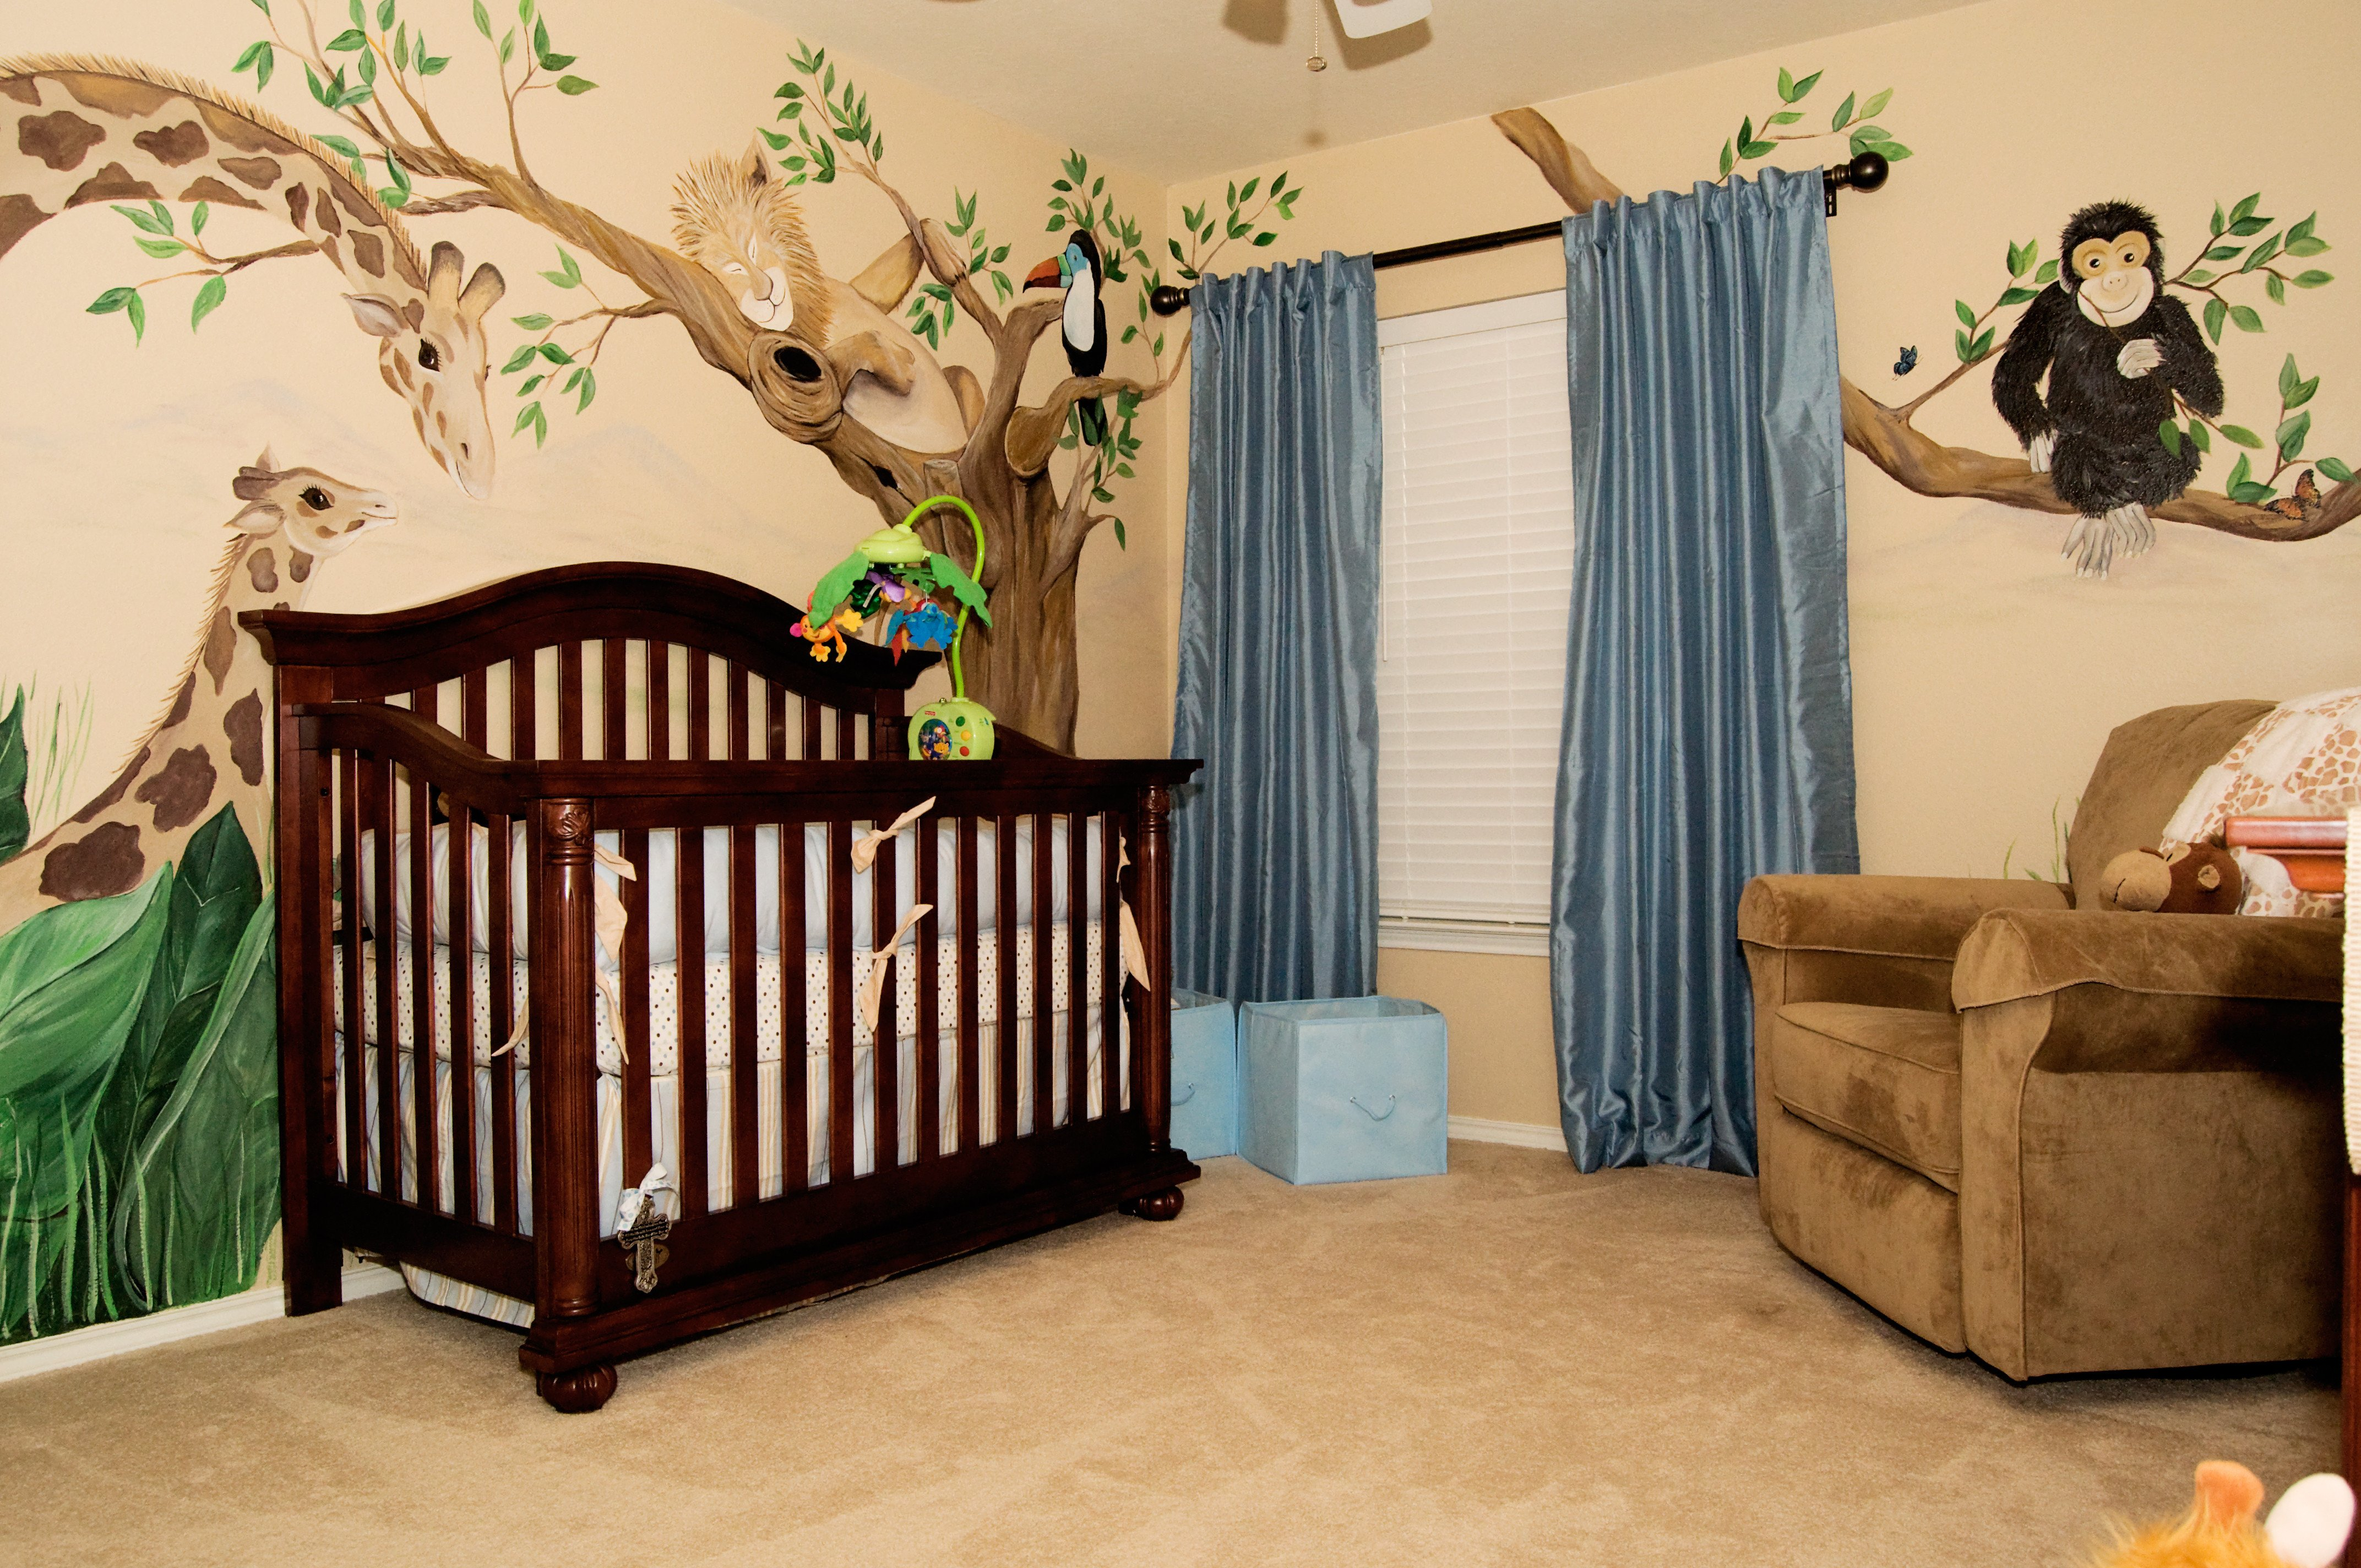 Baby Boy Room Decor Ideas Fresh Adorable Baby Room Décor Ideas